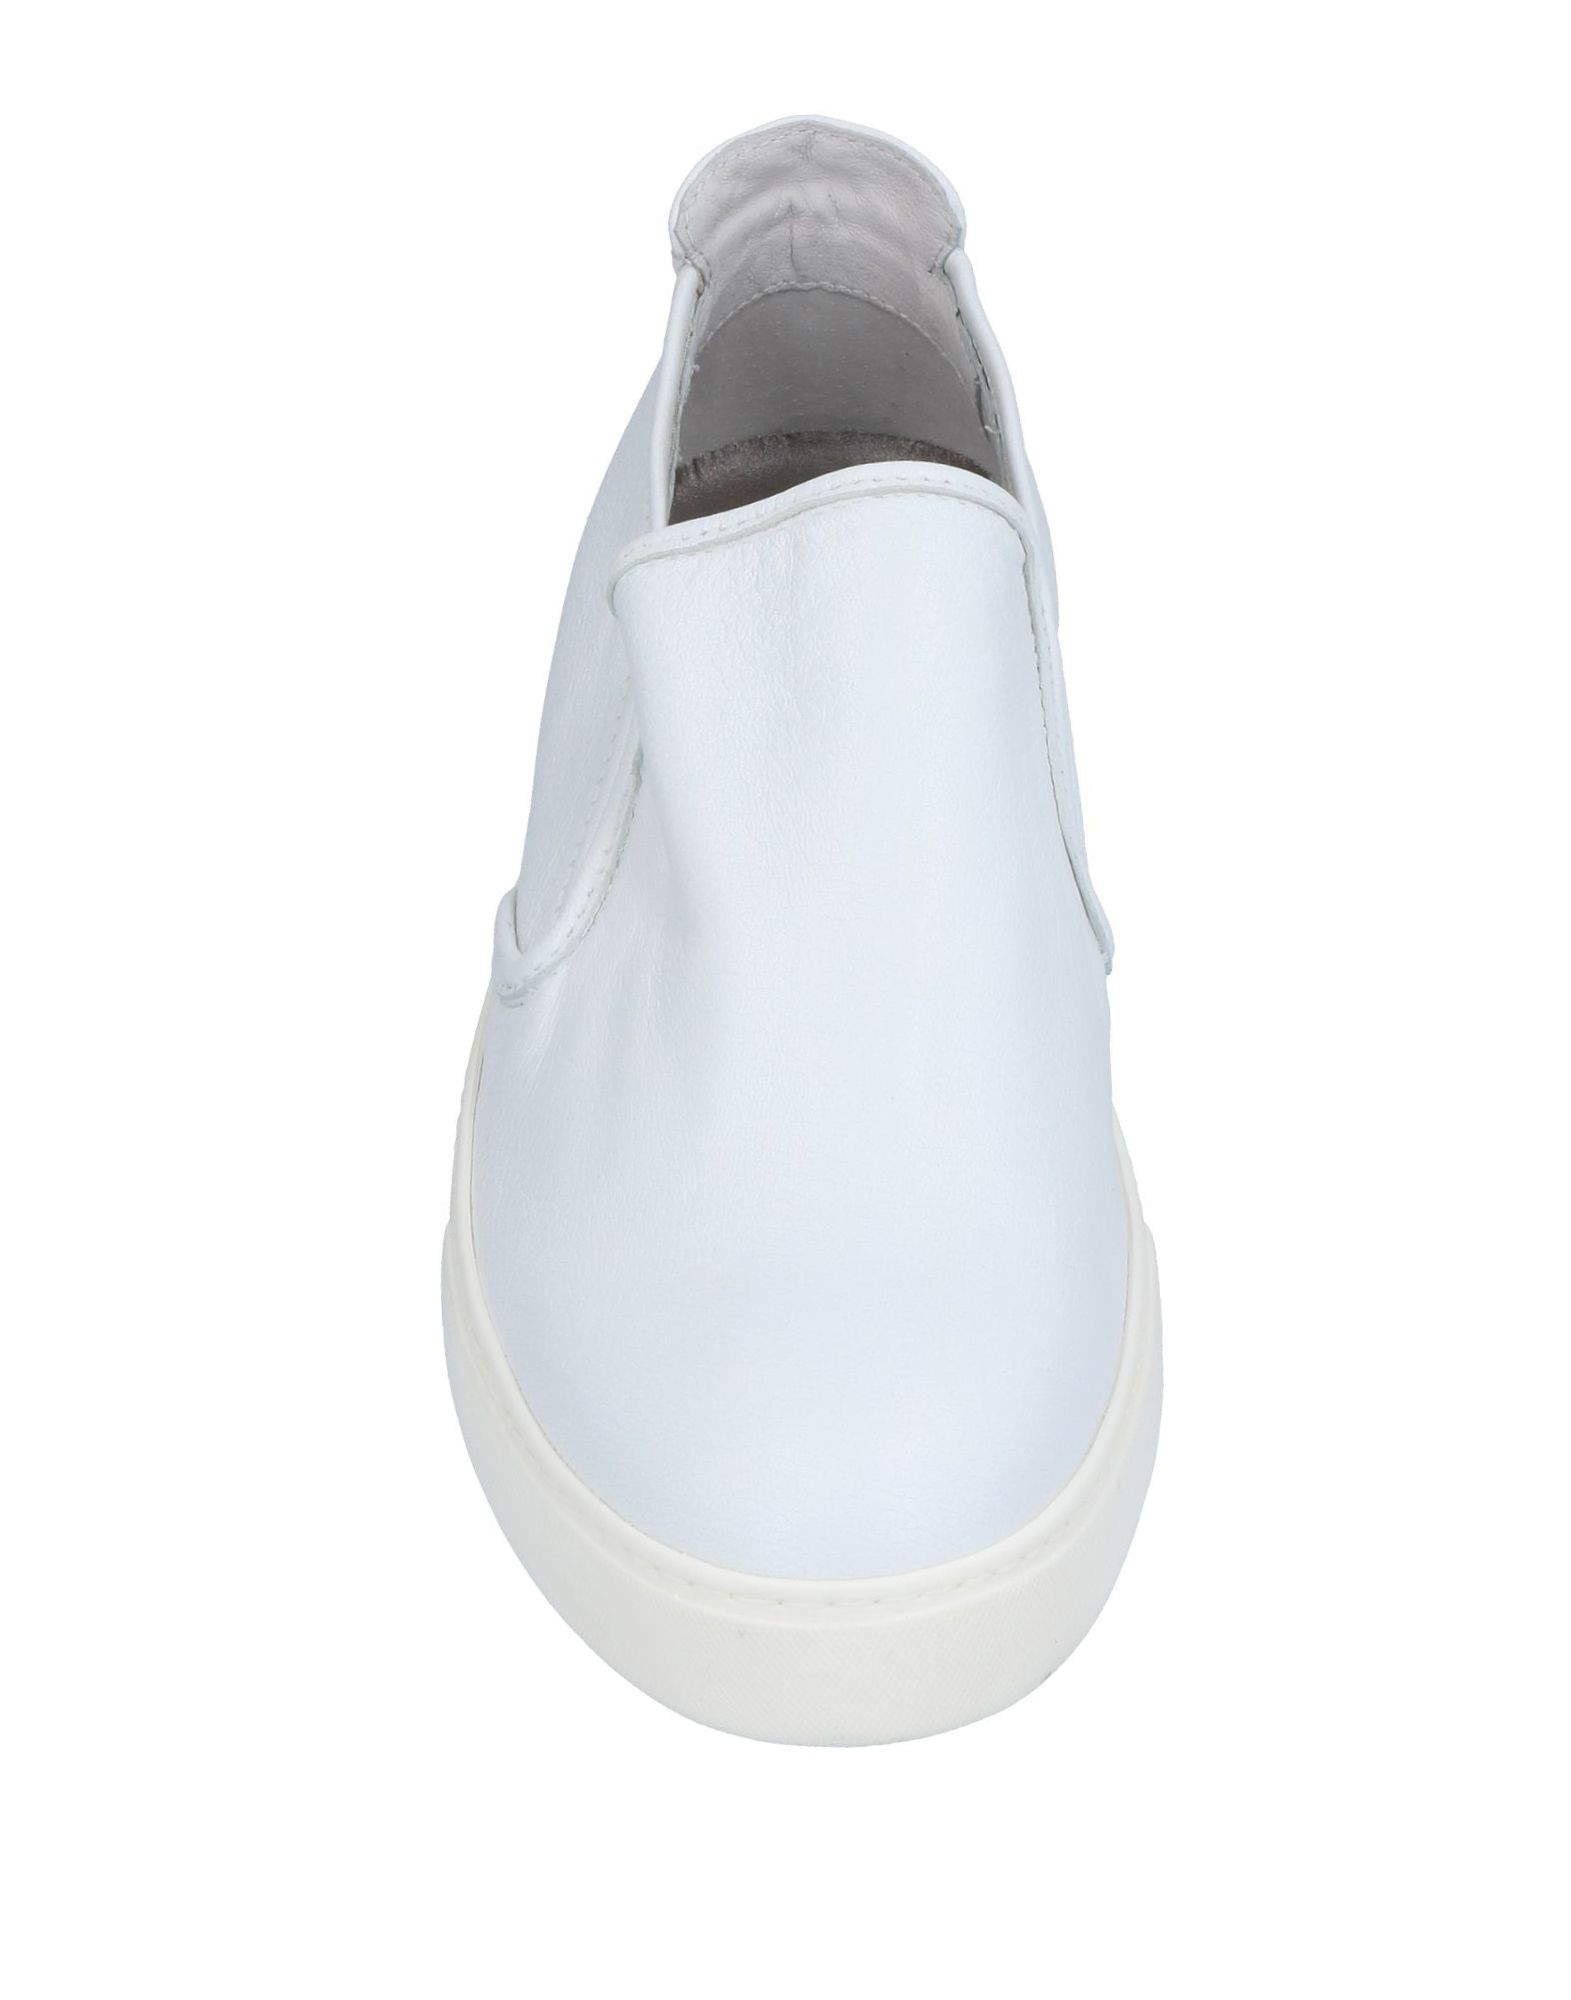 Sneakers Botticelli Limited Uomo - 11405812OH